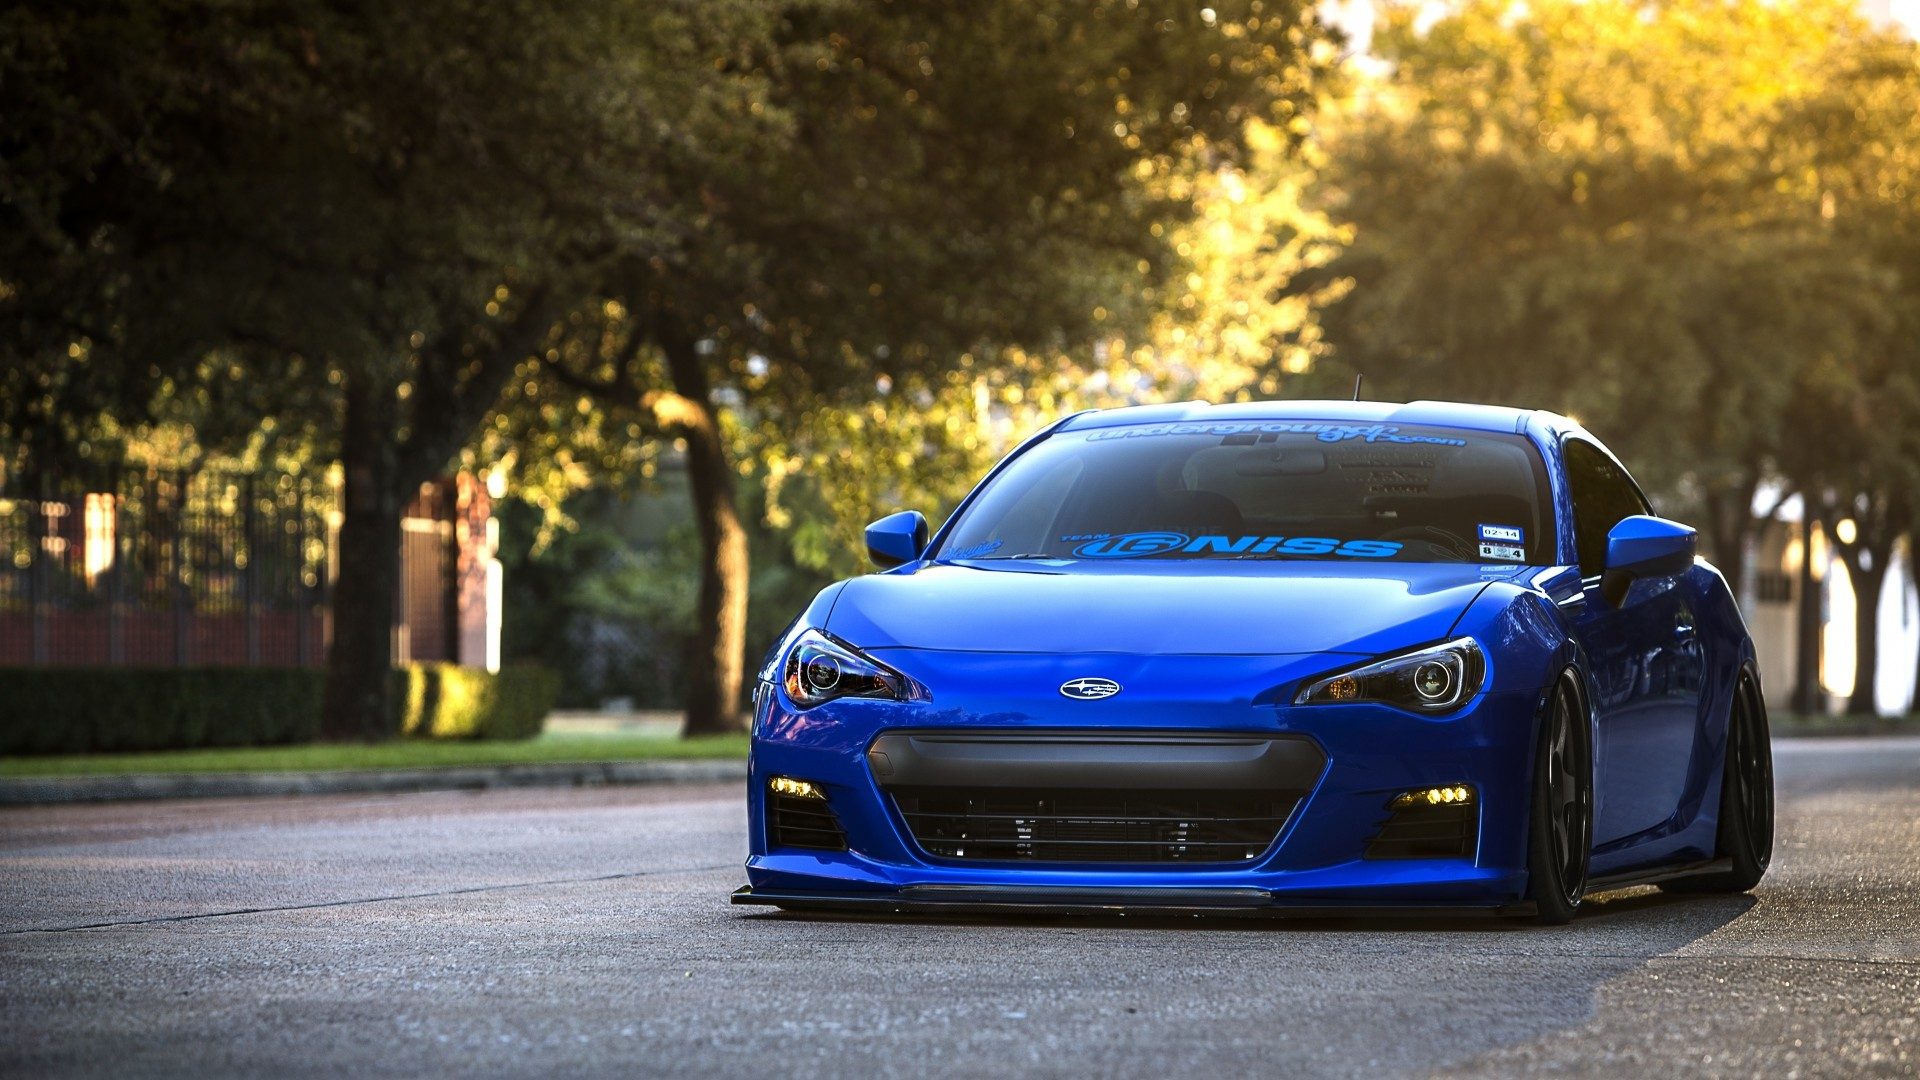 Subaru Sports Car Wallpapers Picture with HD Desktop px 802.07 KB